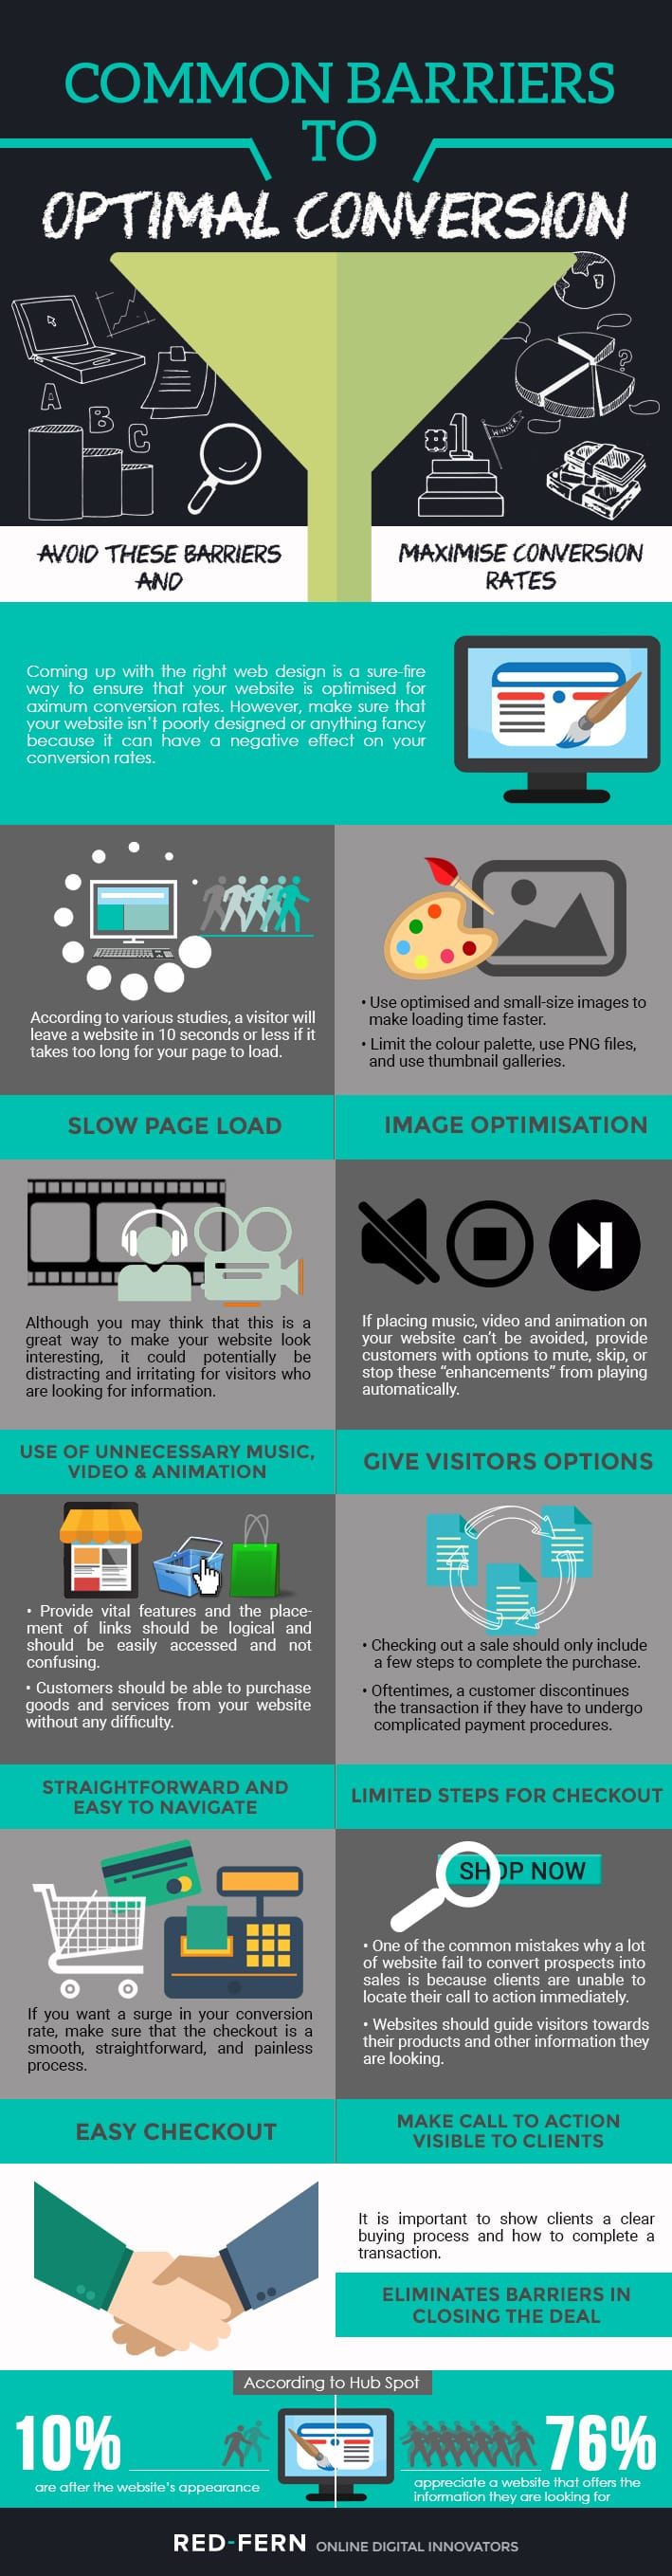 infographic for optimal conversion